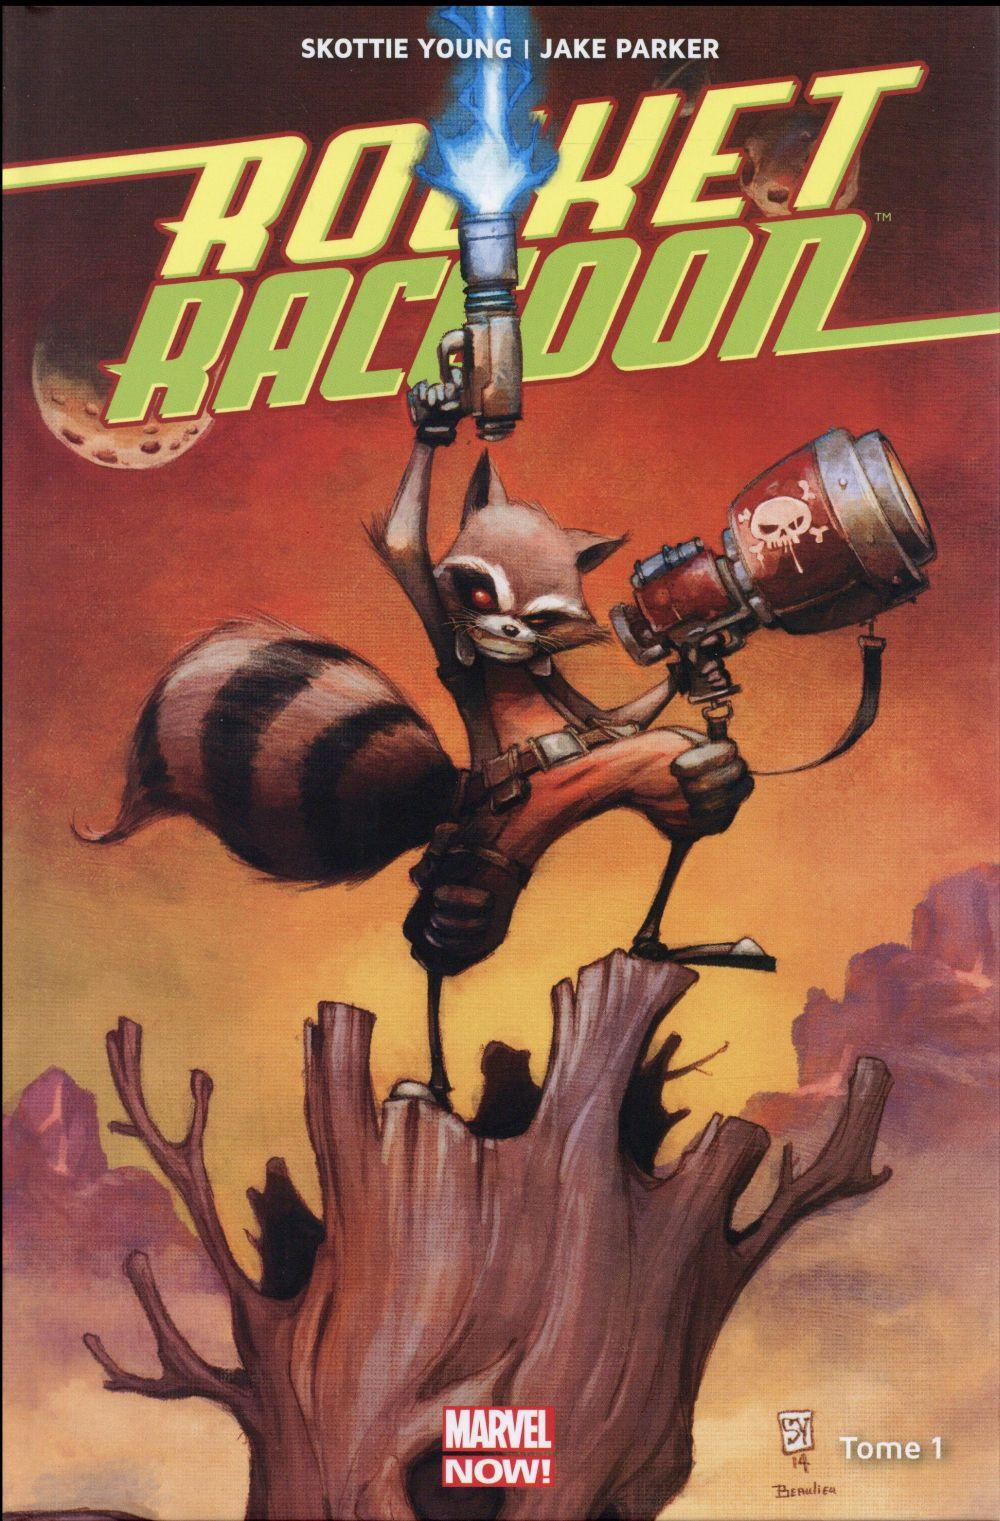 Rocket Raccoon t.1  - Jake Parker  - Scottie Young